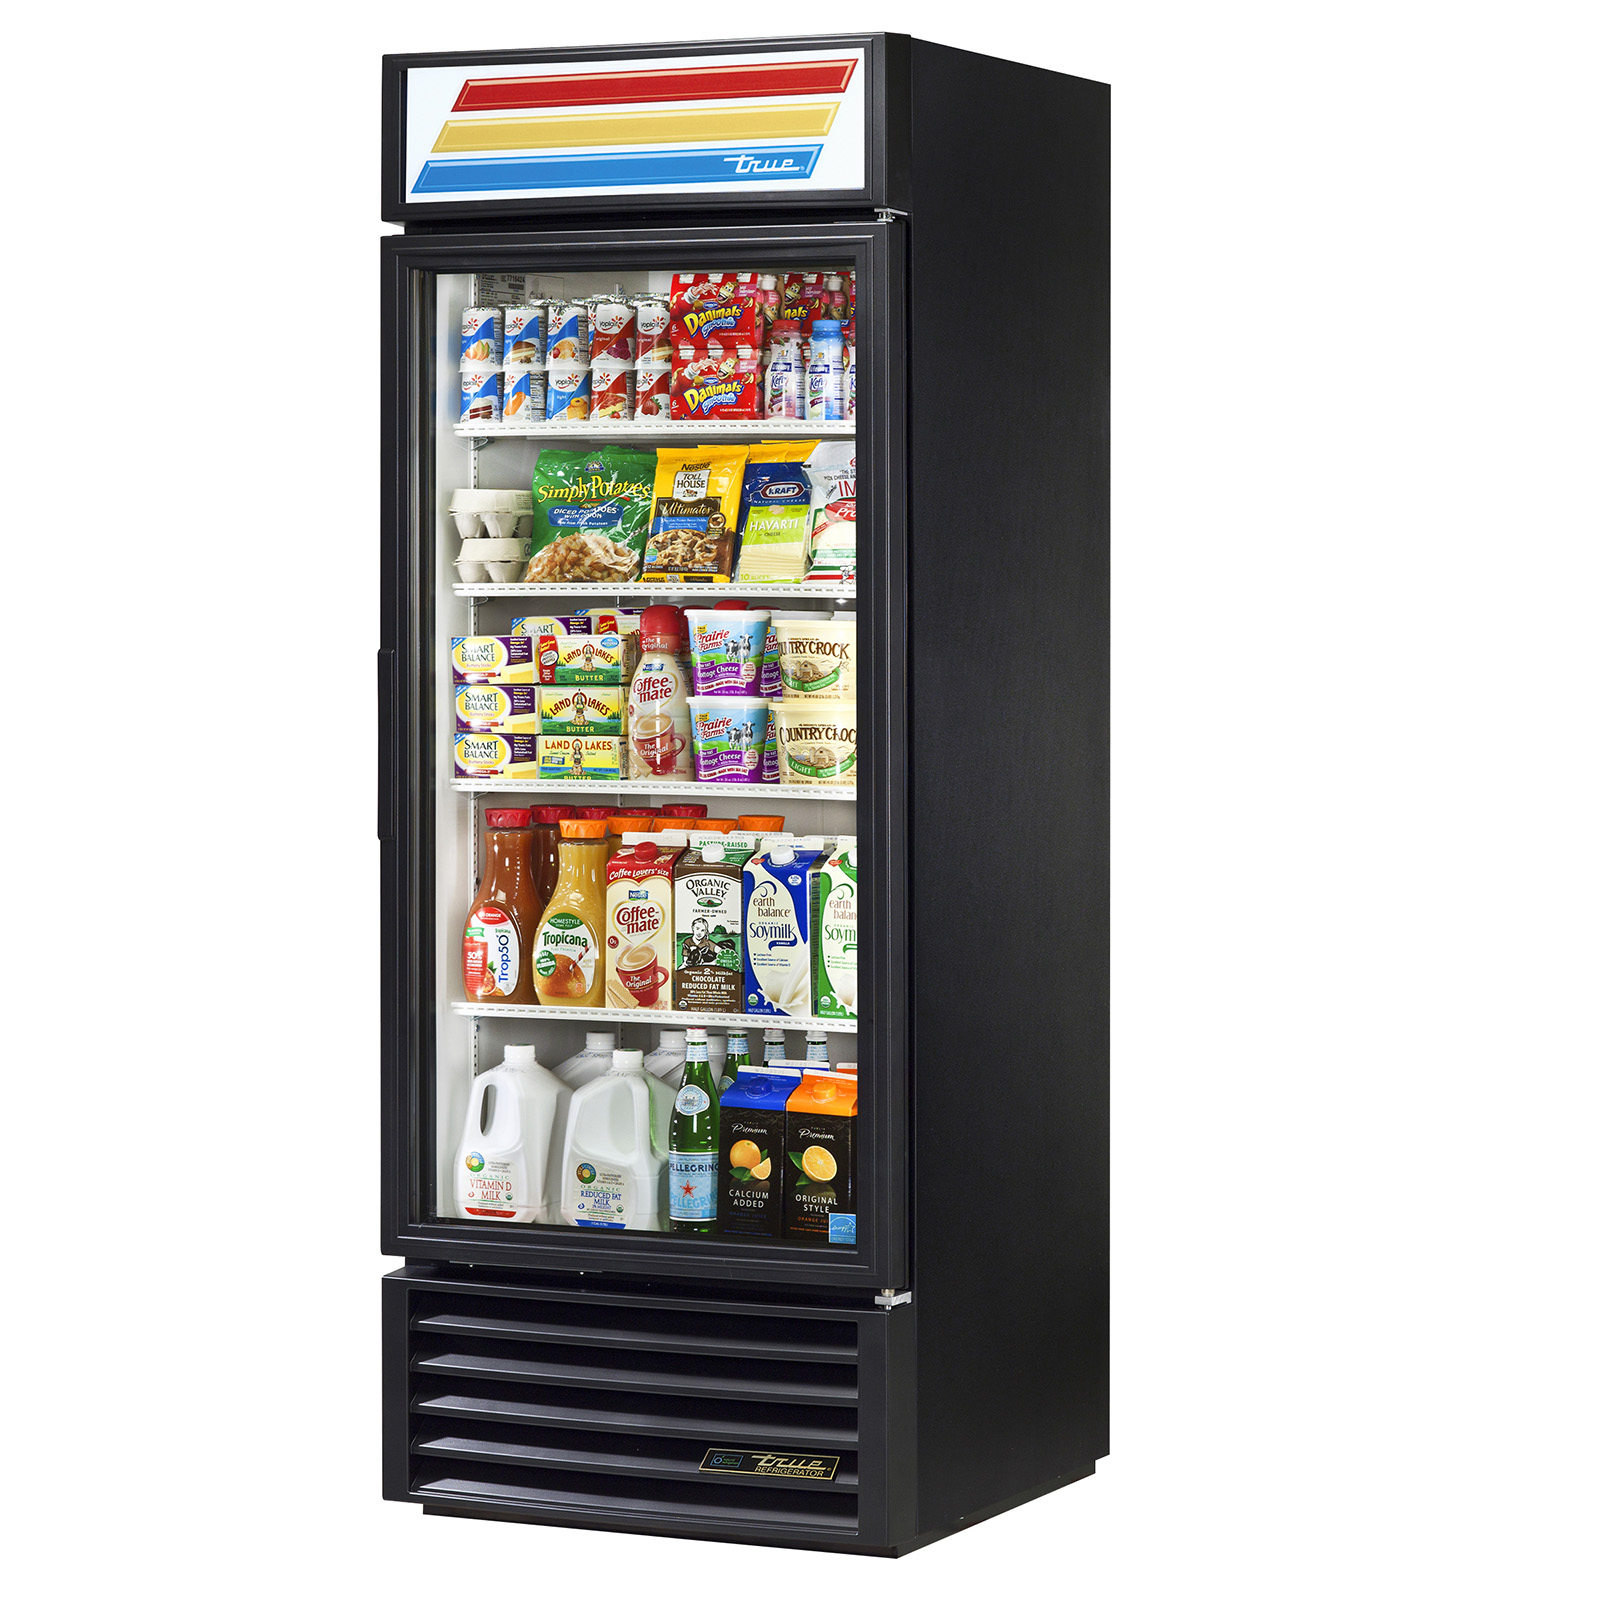 GDM-26-HC-LD True - Refrigerated Merchandiser one-section